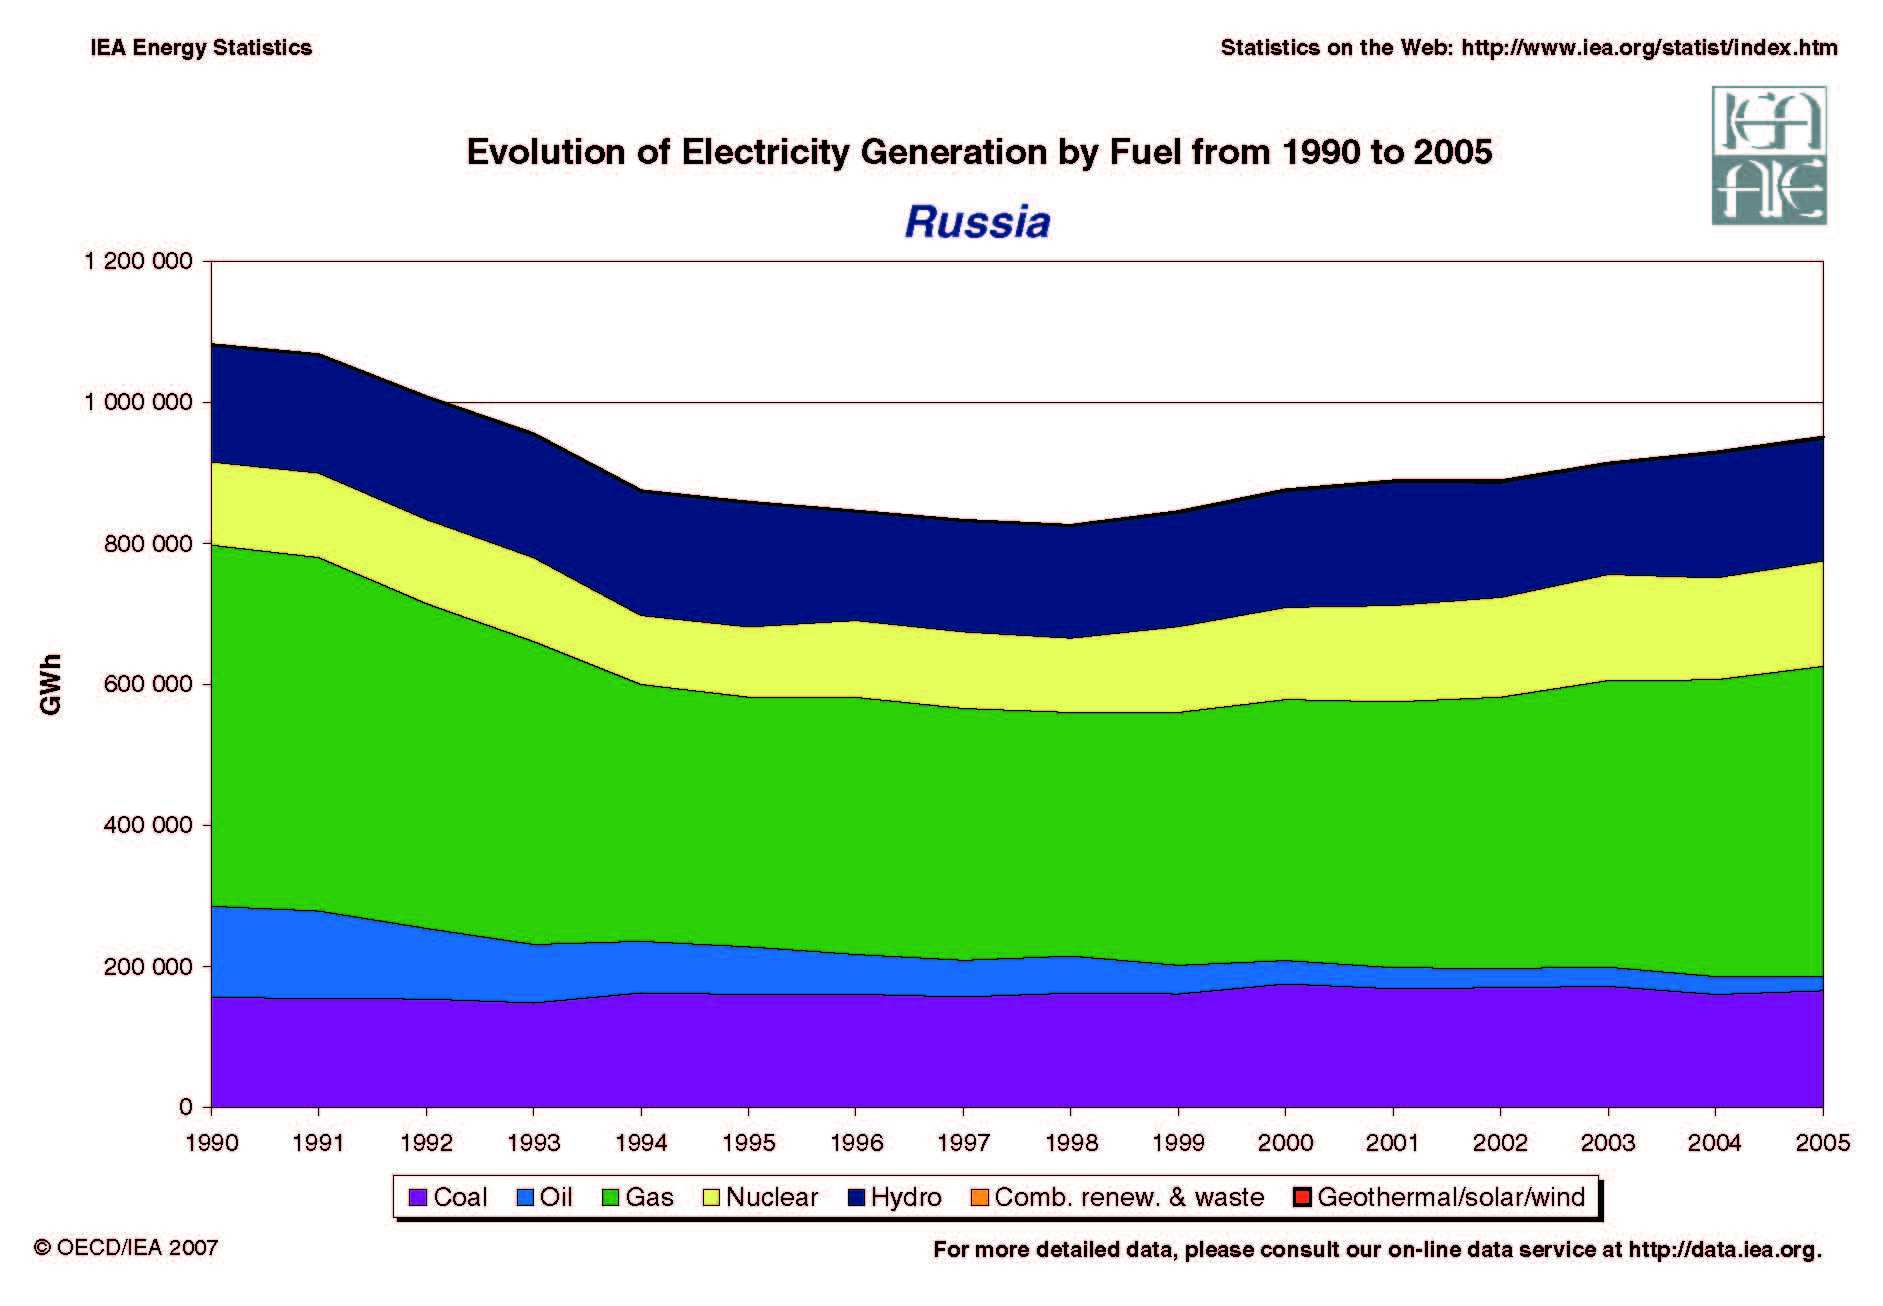 Evolution of Electricity Generation by Fuel, 1990-2005